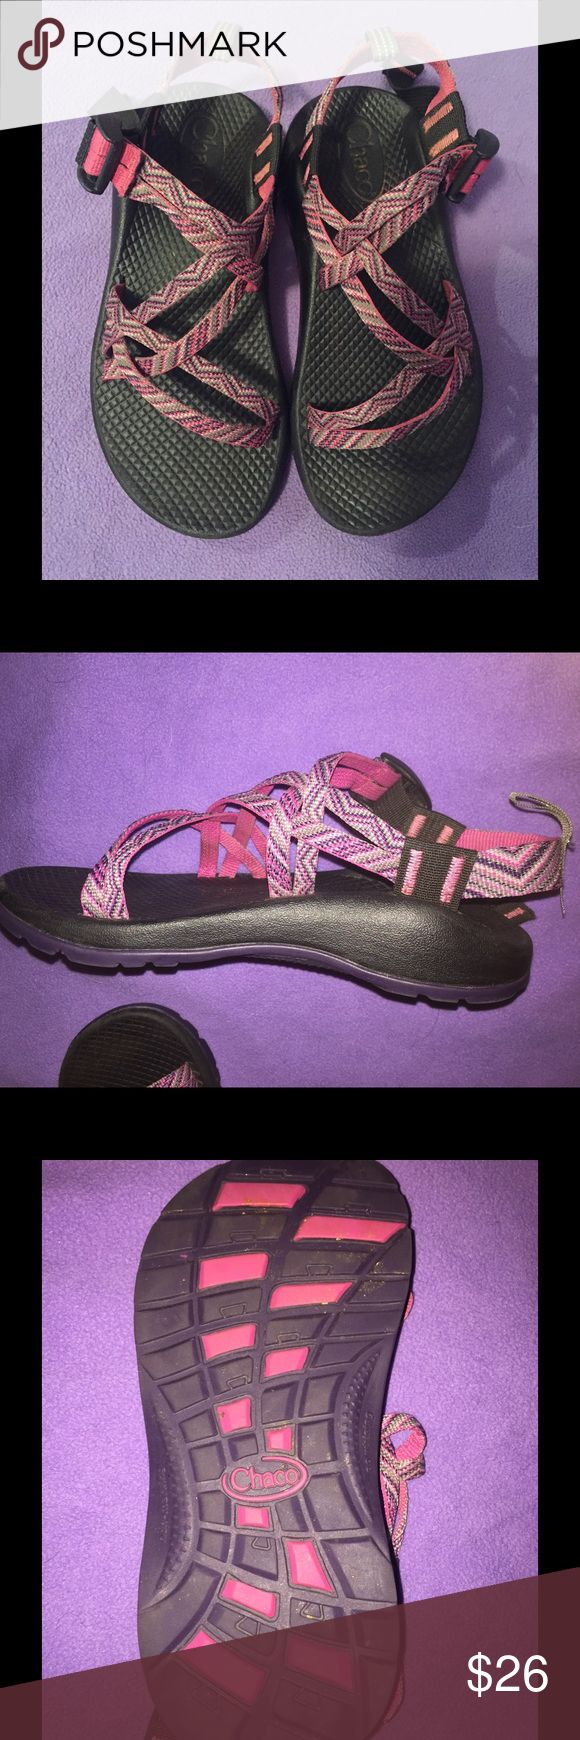 Kids chacos Pink and purple cover on chacos in kids Chaco Shoes Water Shoes